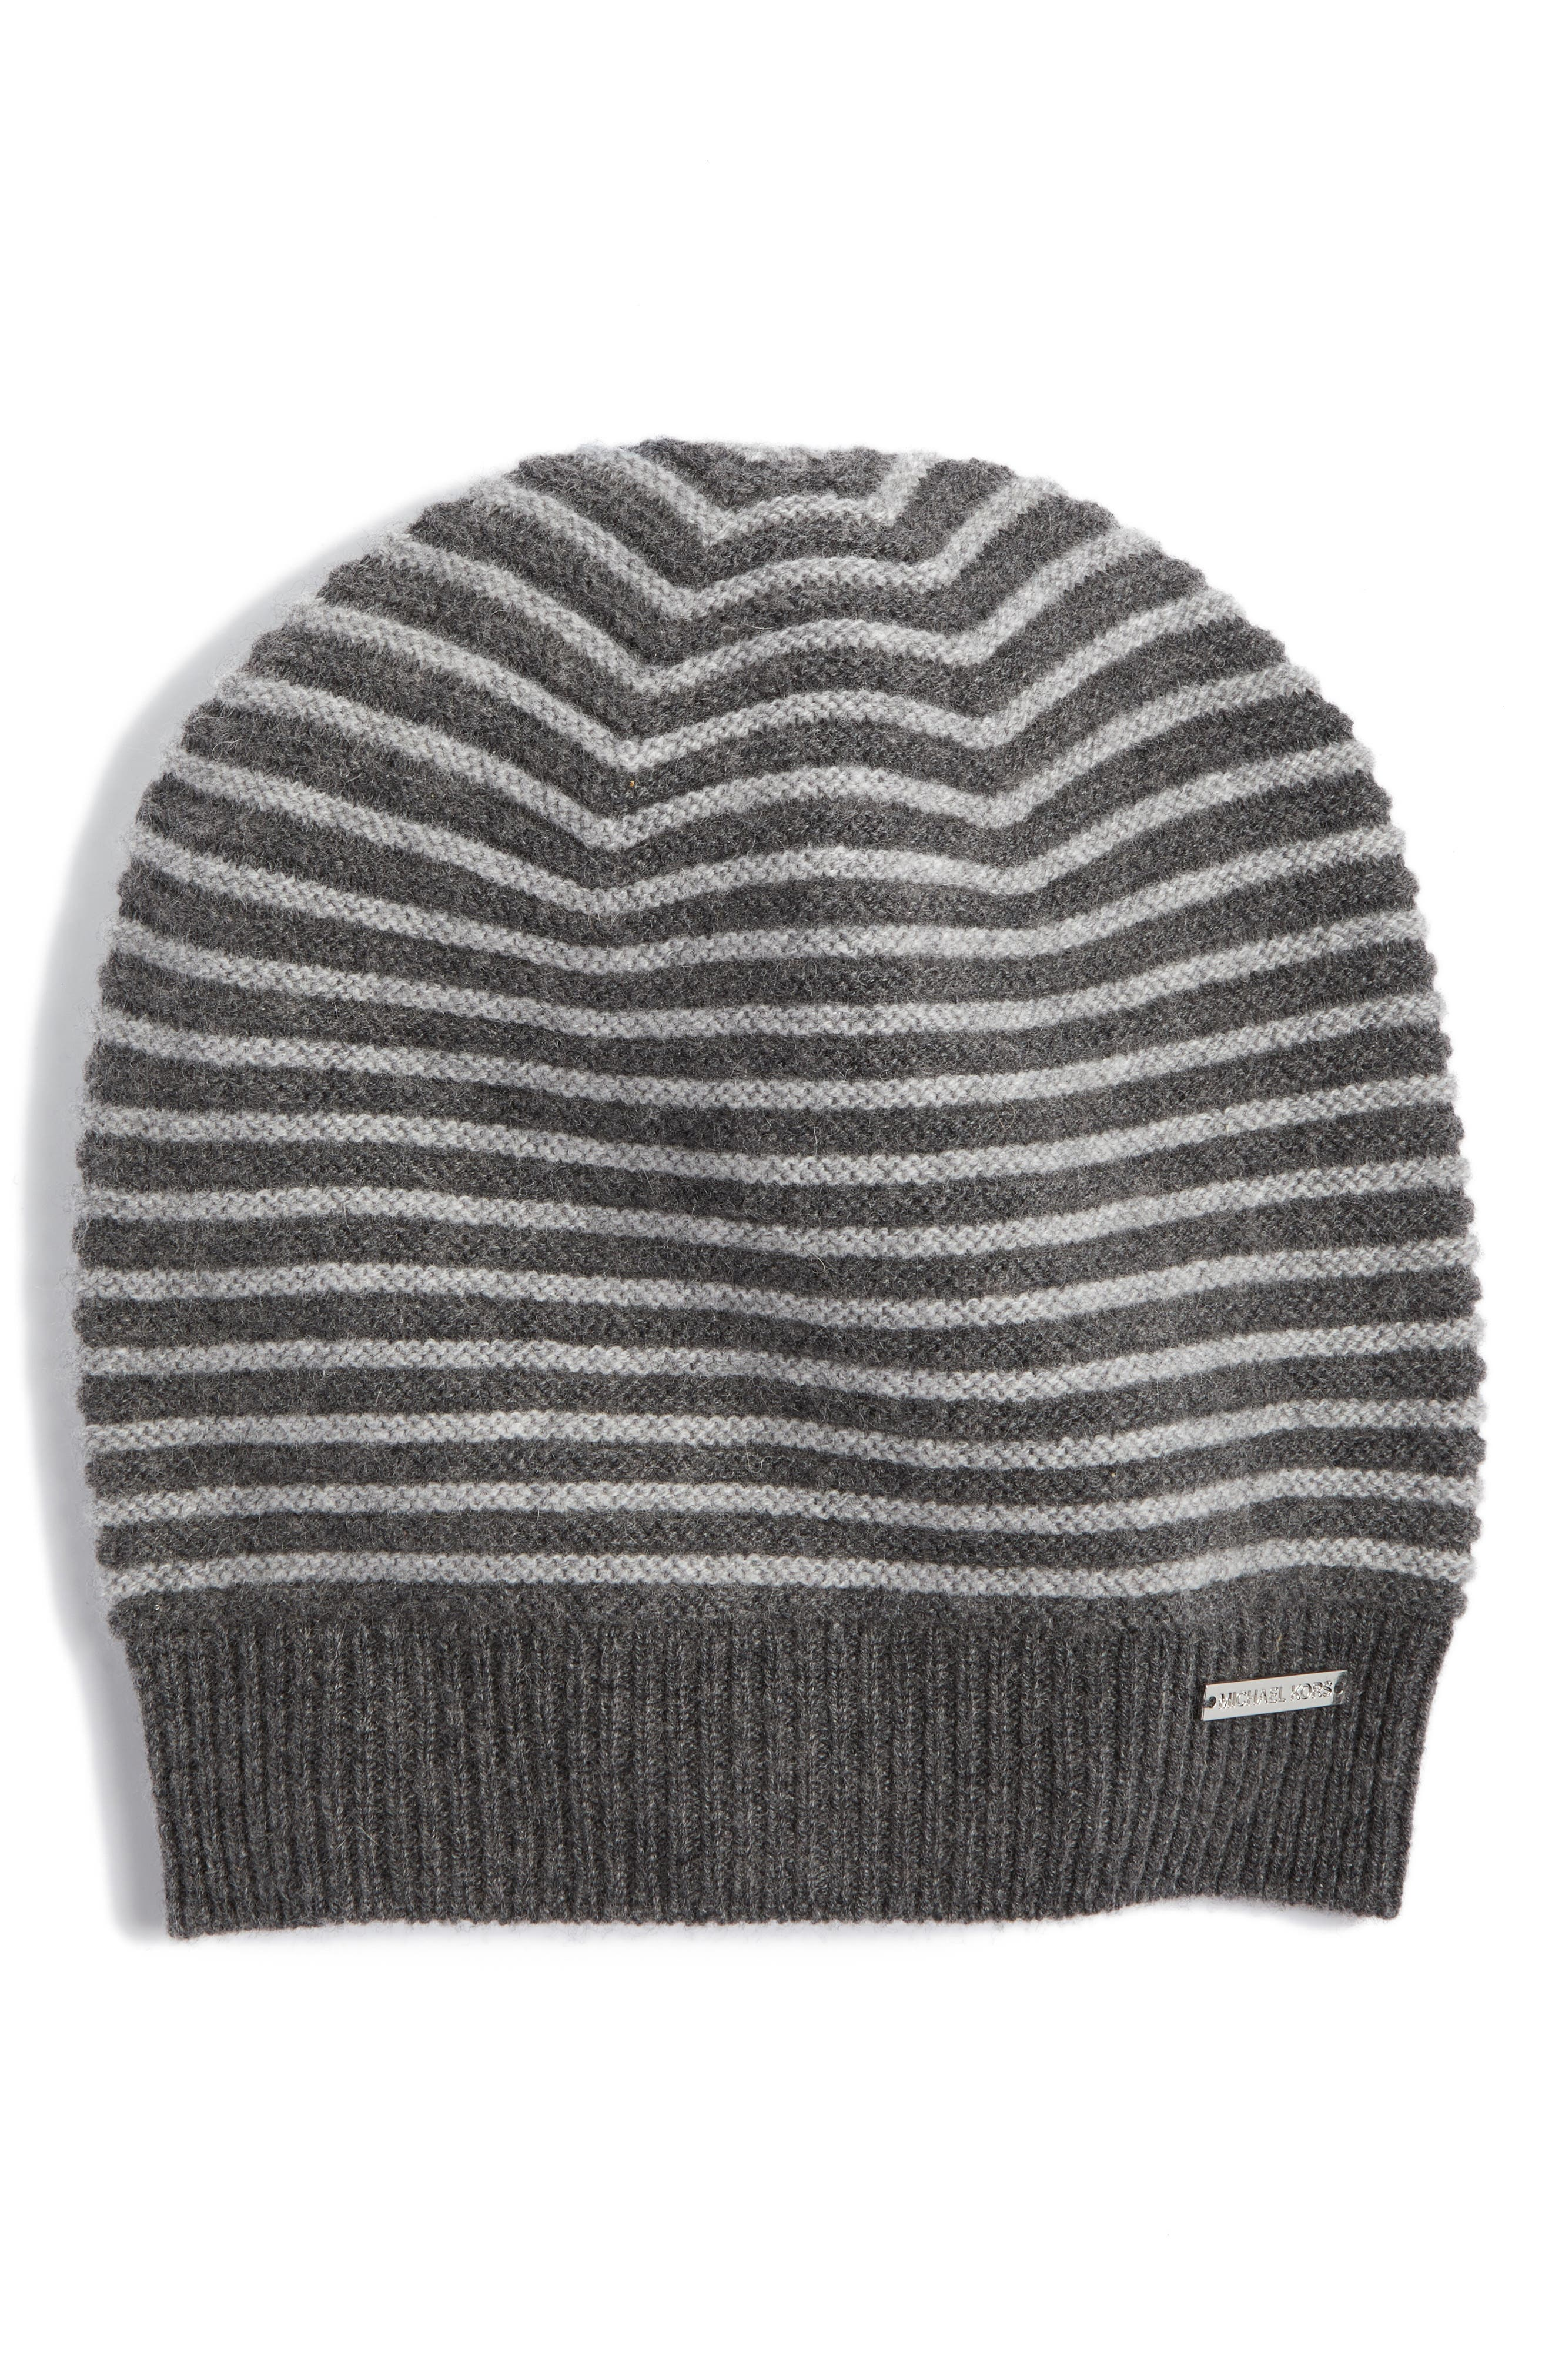 Double Links Wool & Cashmere Hat,                         Main,                         color, Derby/ Pearl Heather Grey